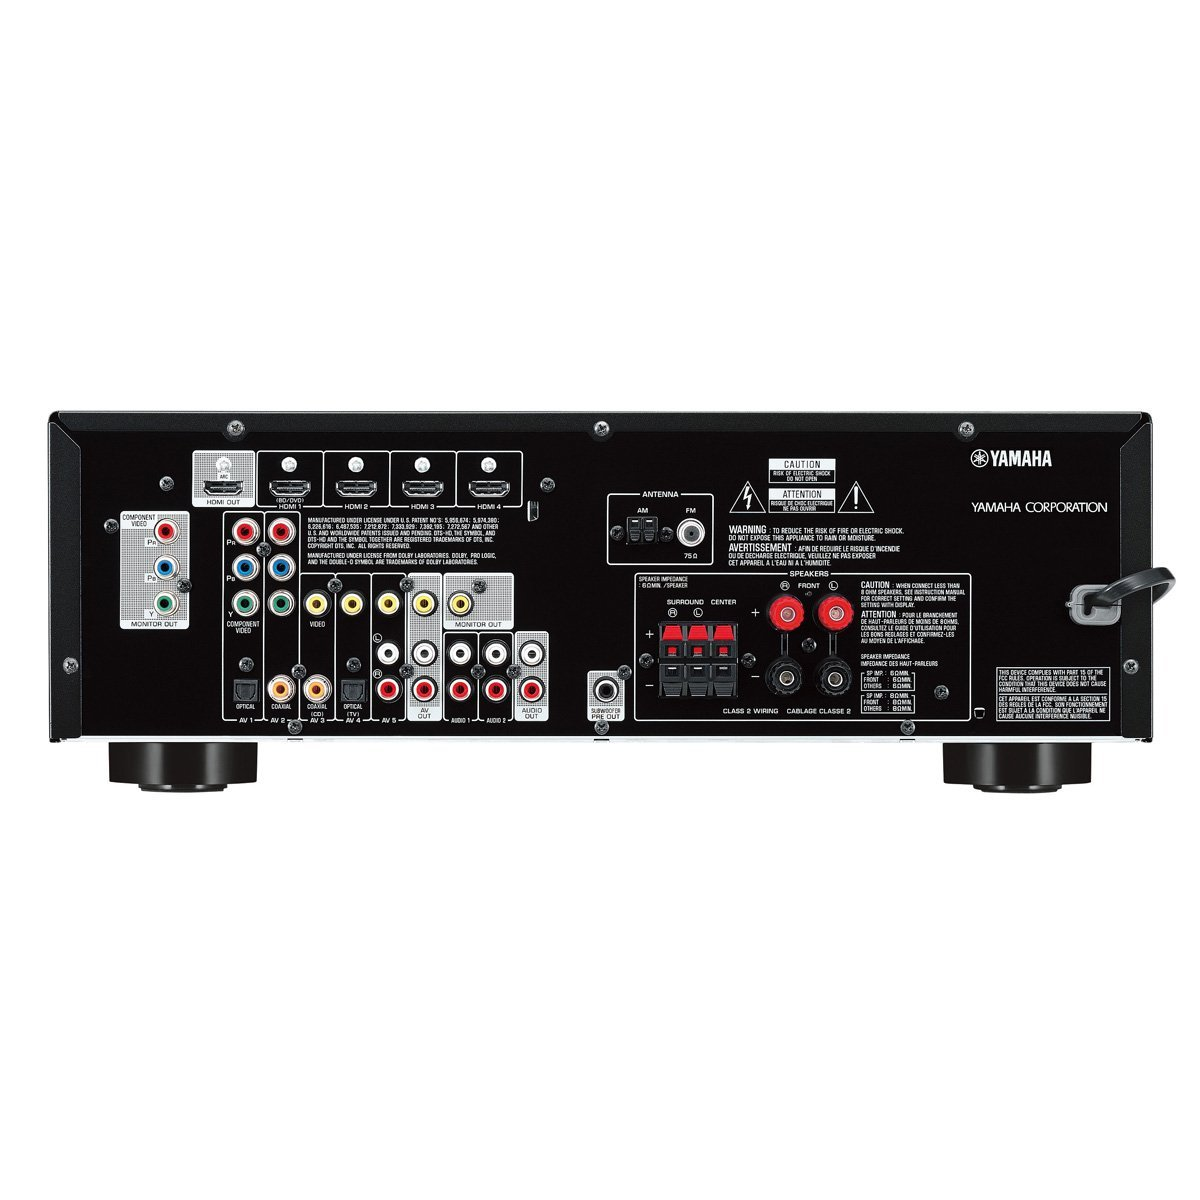 What Is The Impedance For Yamaha Home Theatre Speakers